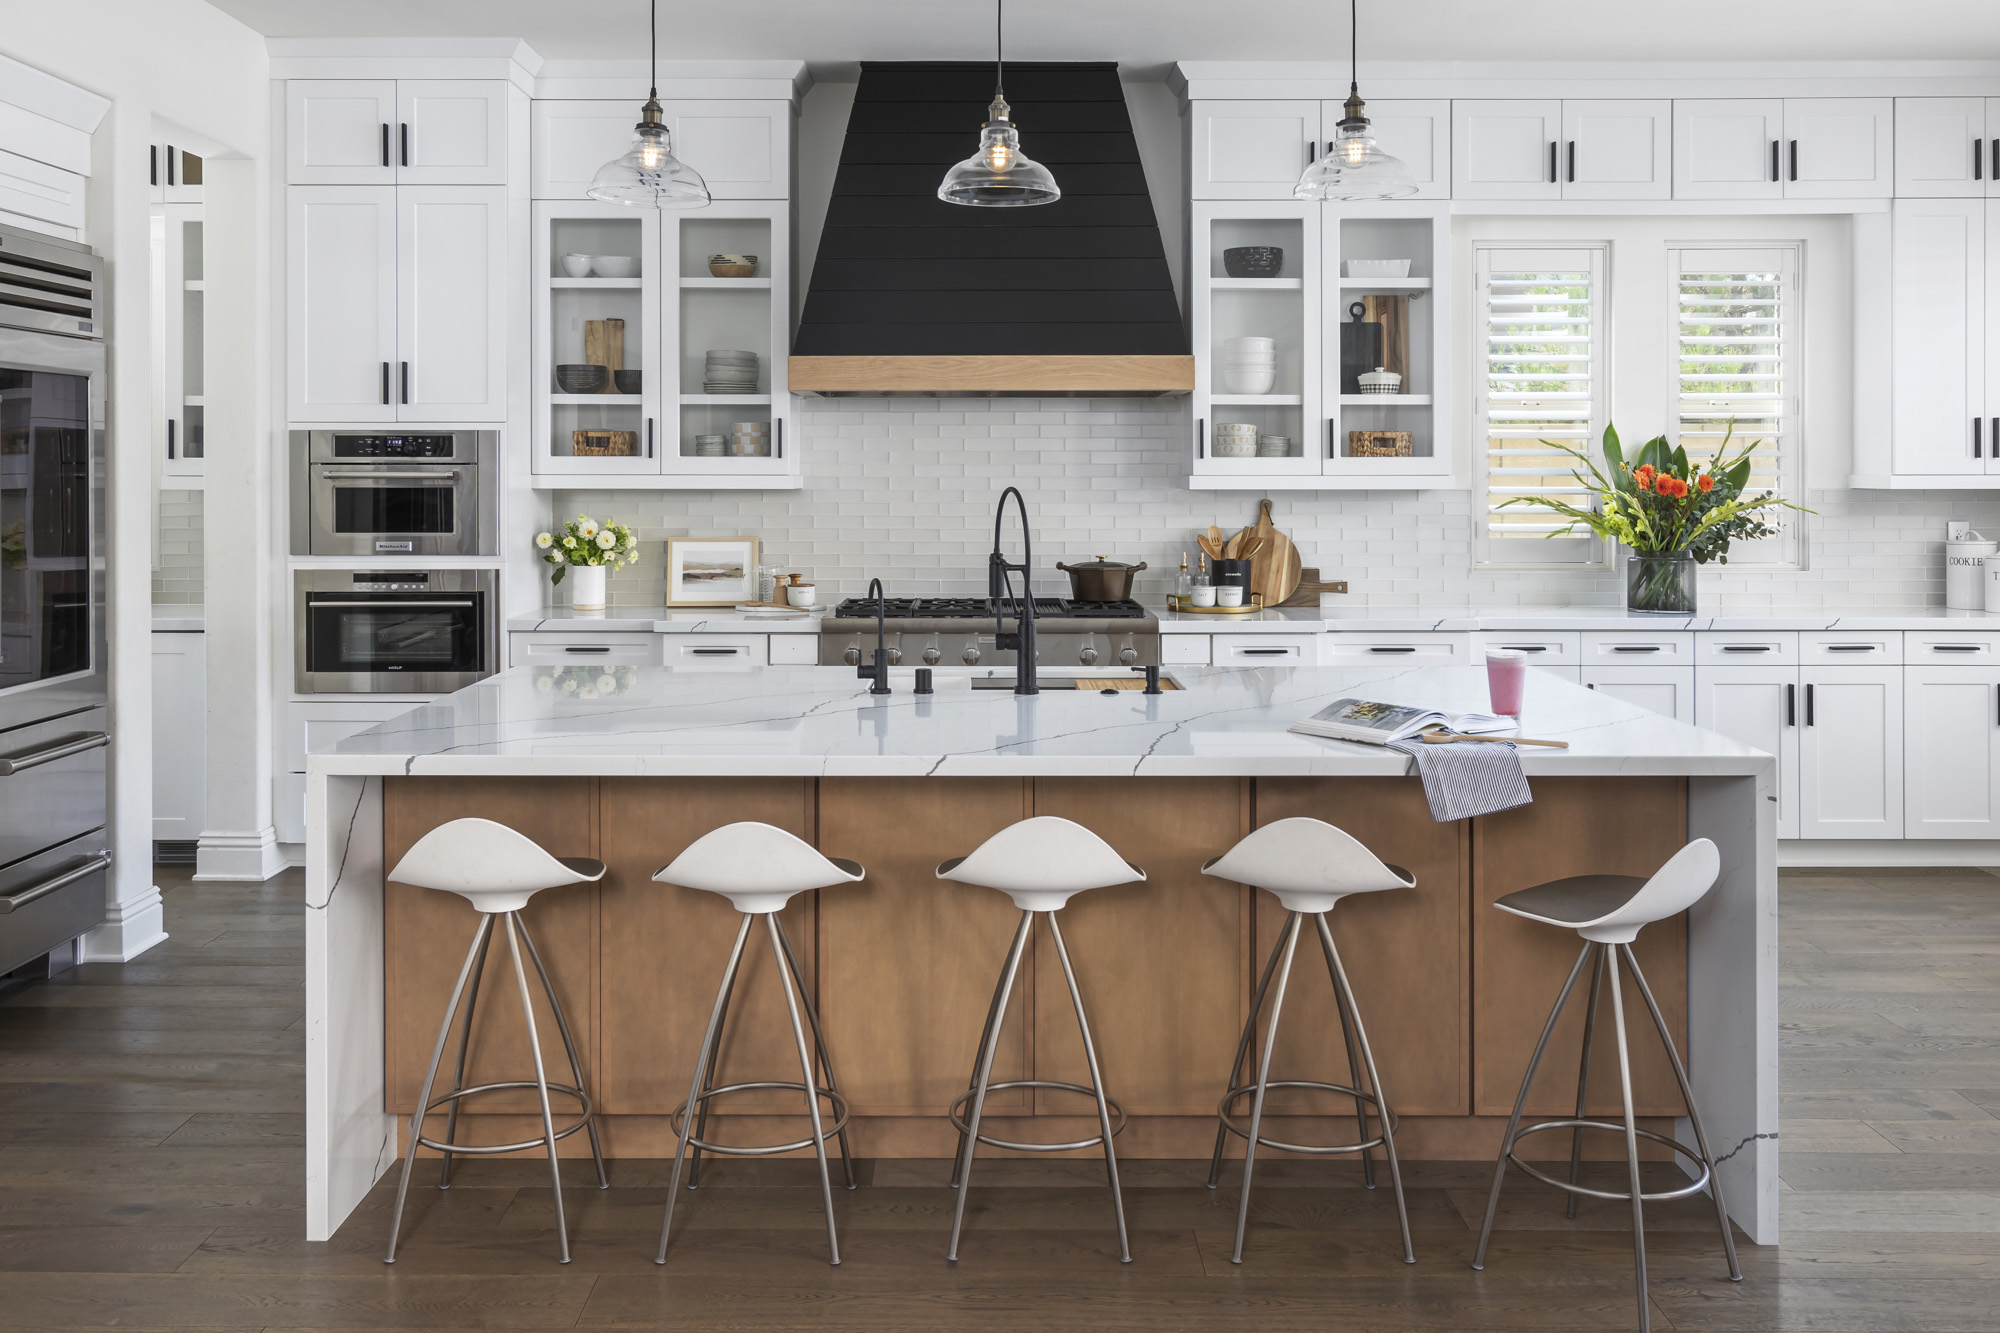 White kitchen with dominant island and wood floors and accents